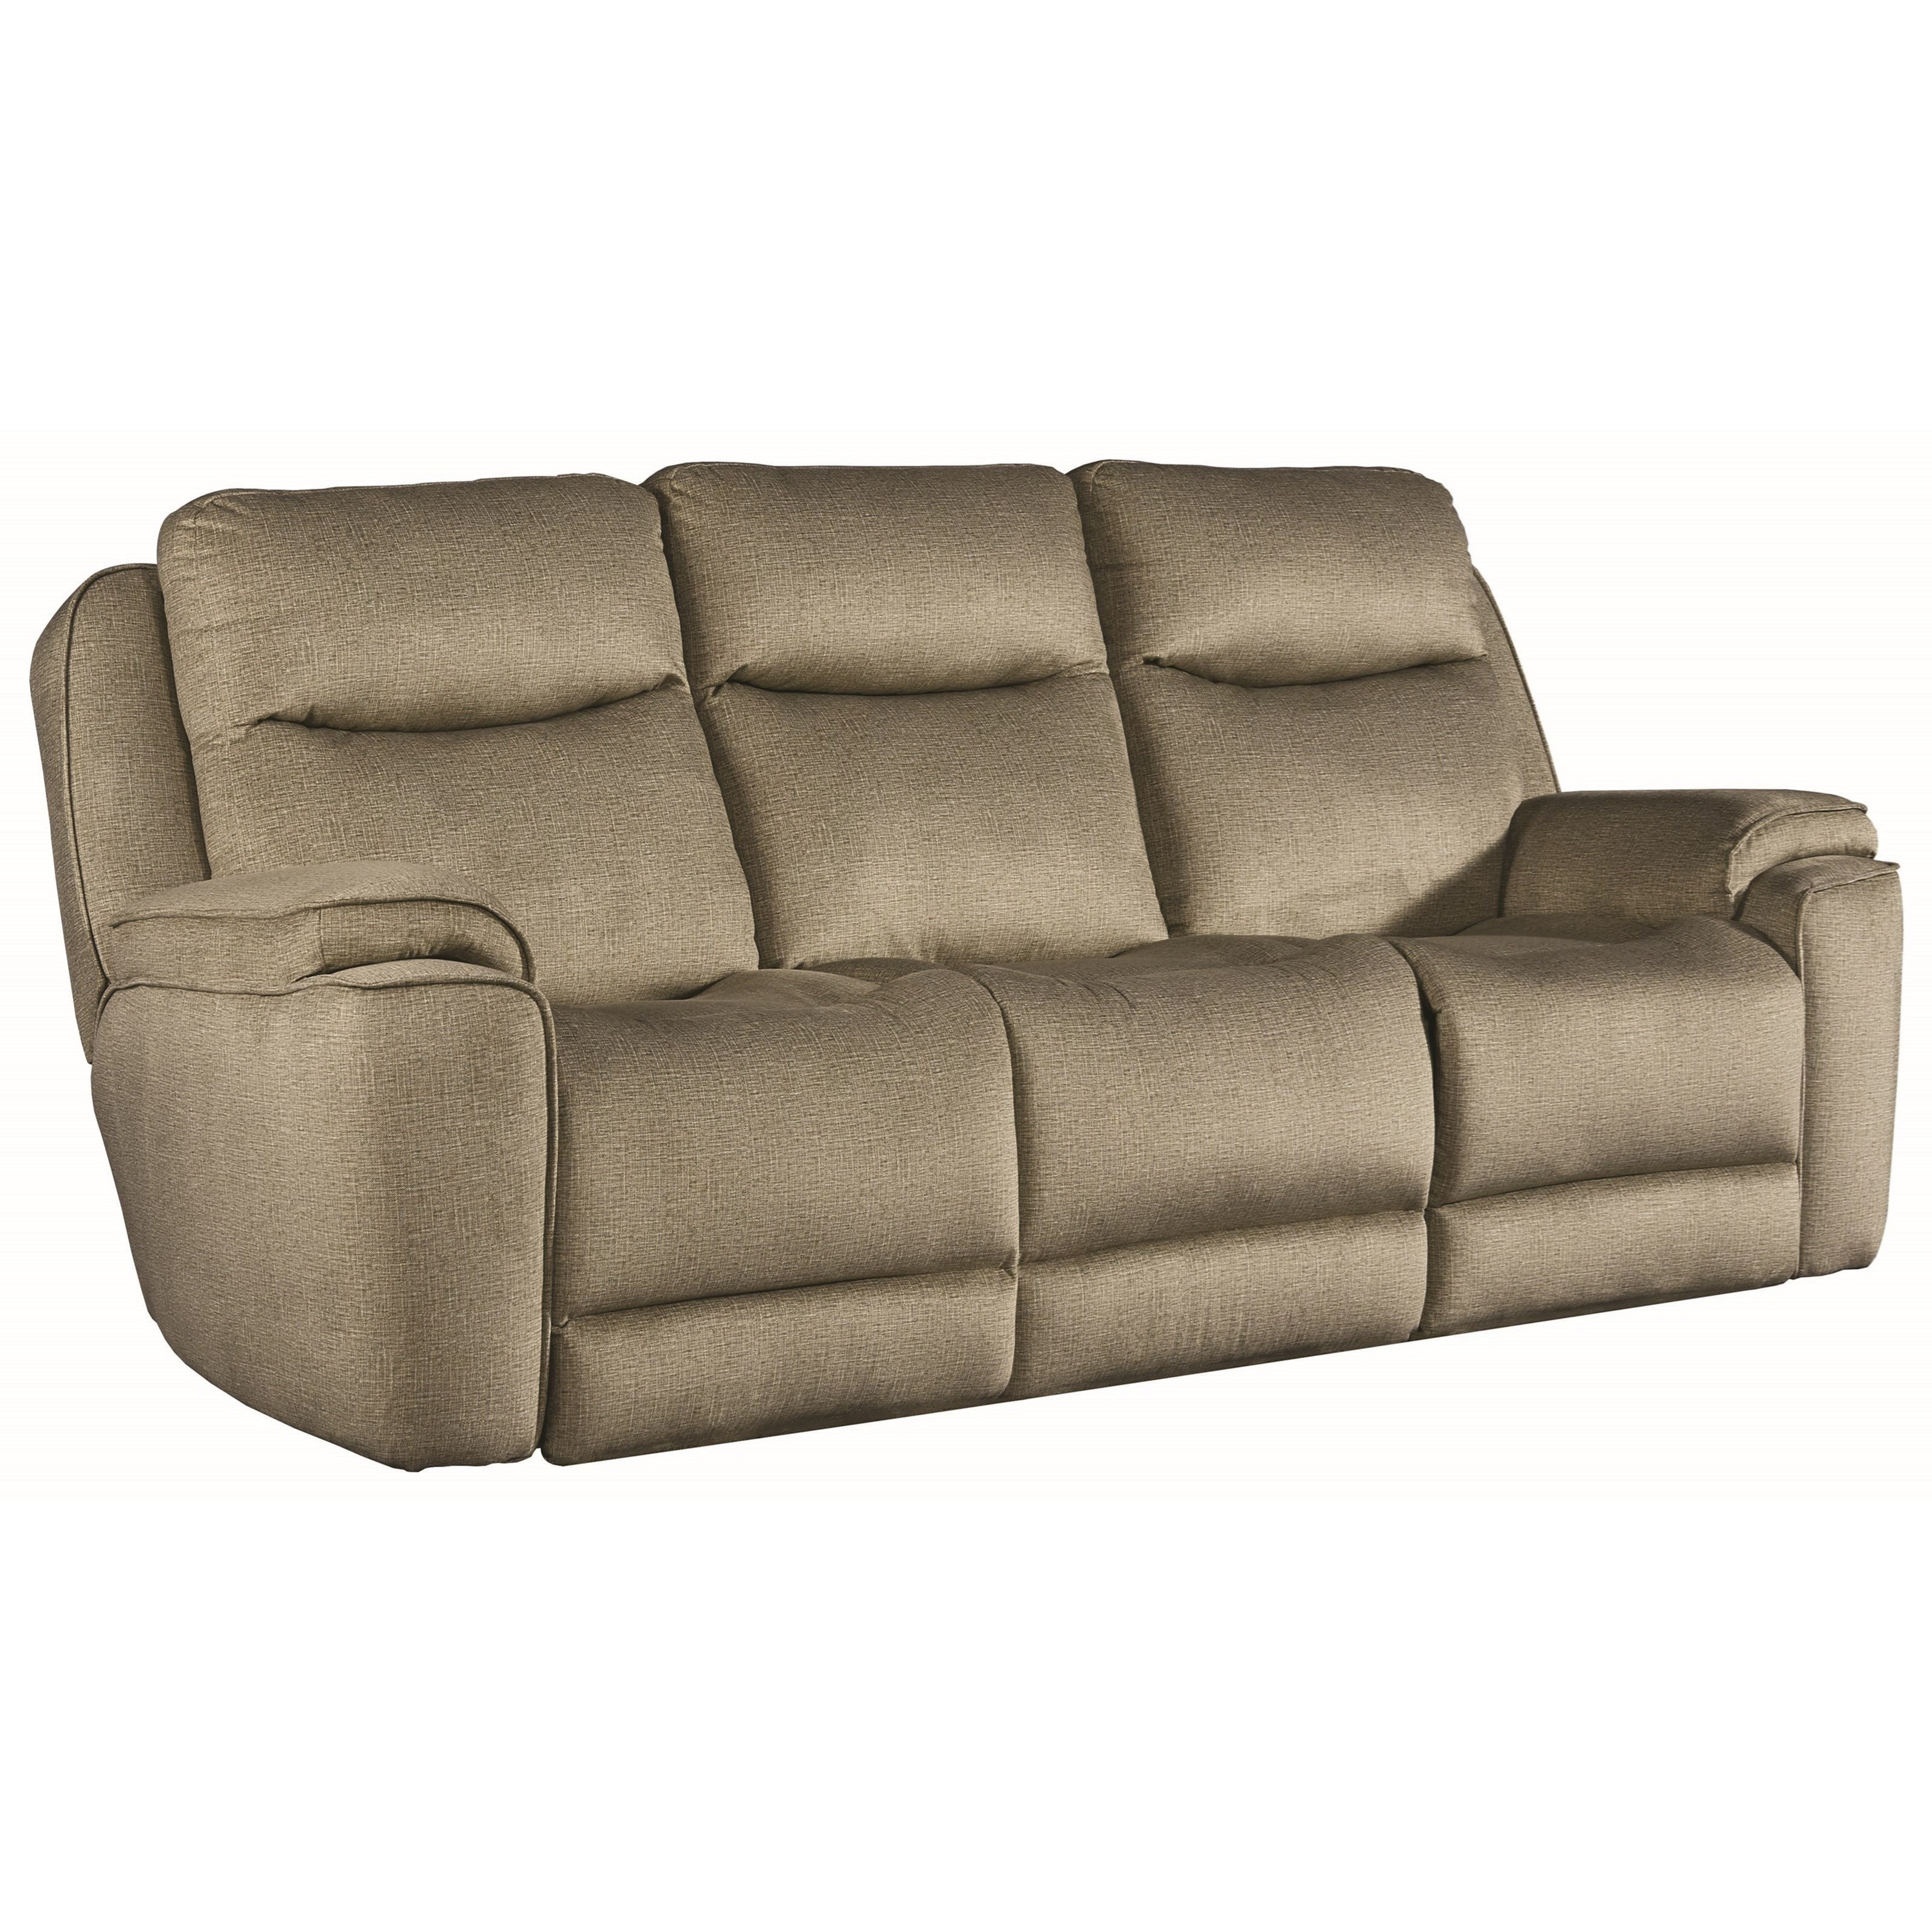 Show Stopper Power Reclining Sofa by Southern Motion at Sparks HomeStore